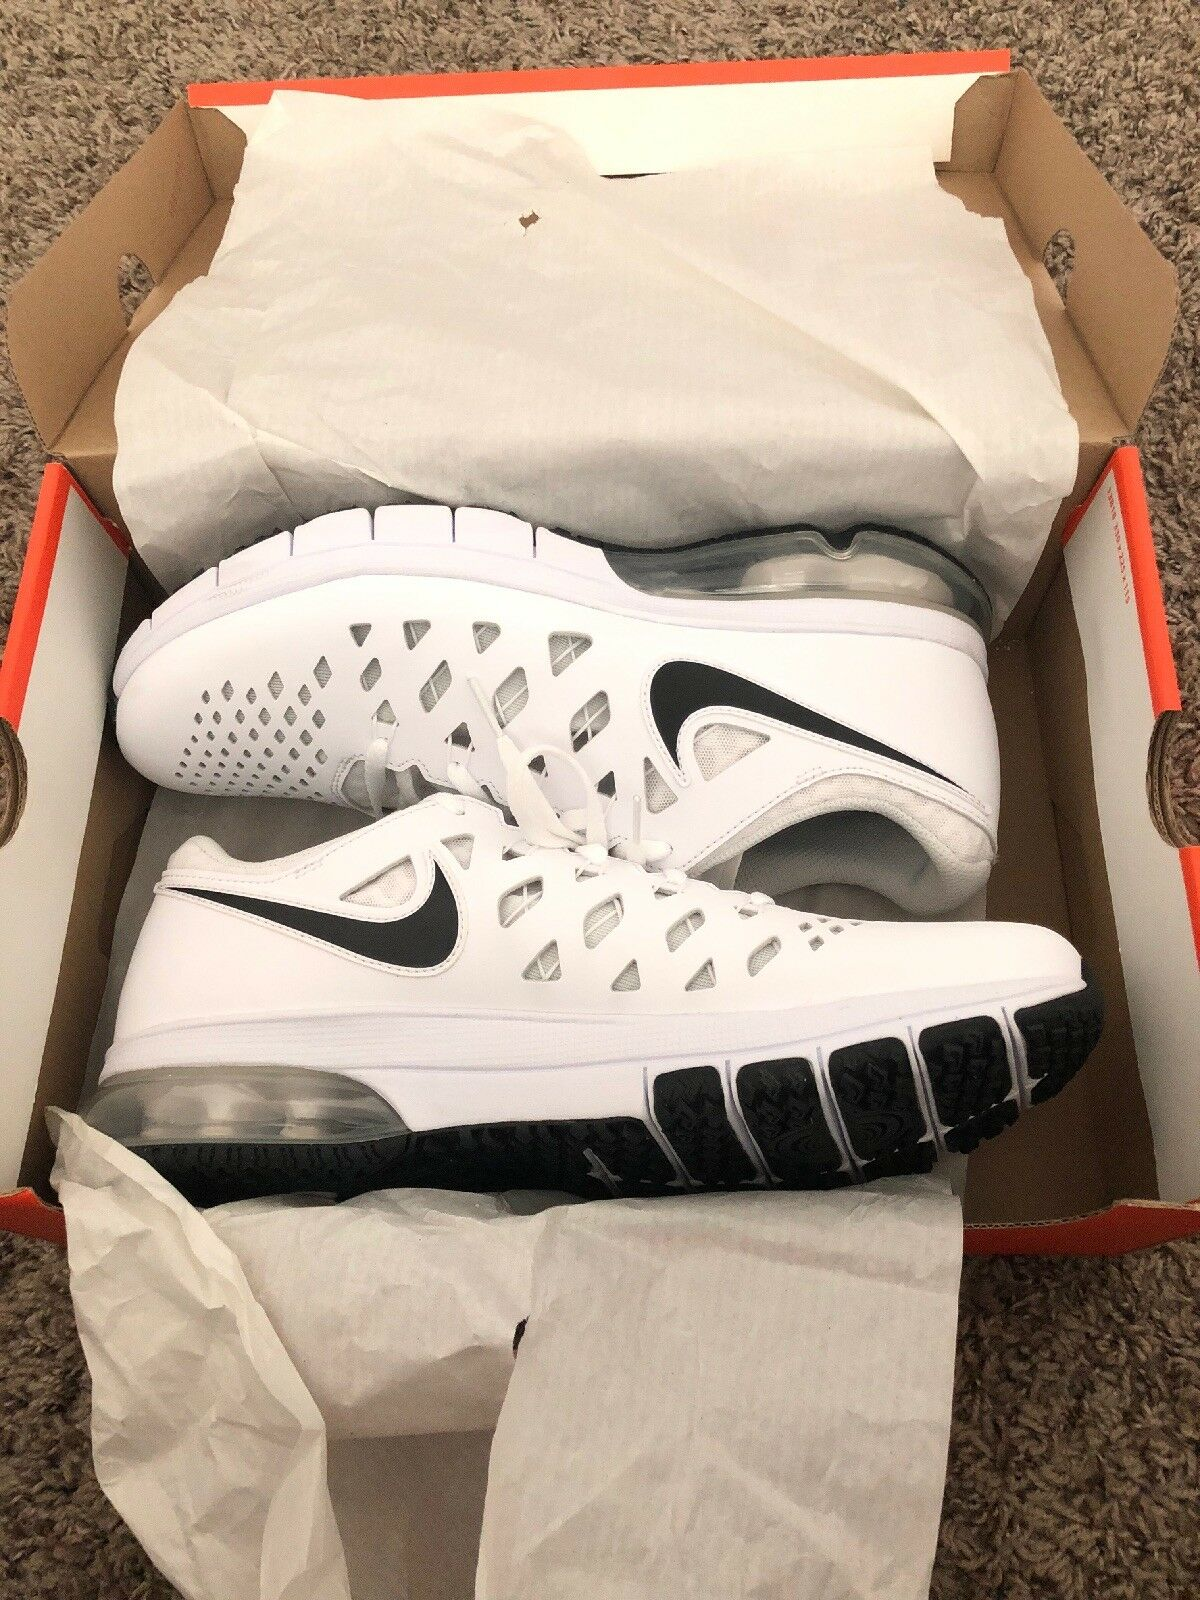 BRAND NEW NIKE AIR TRAINER 10 180 MEN'S SHOES SIZE 10 TRAINER WITH BOX c4b36e